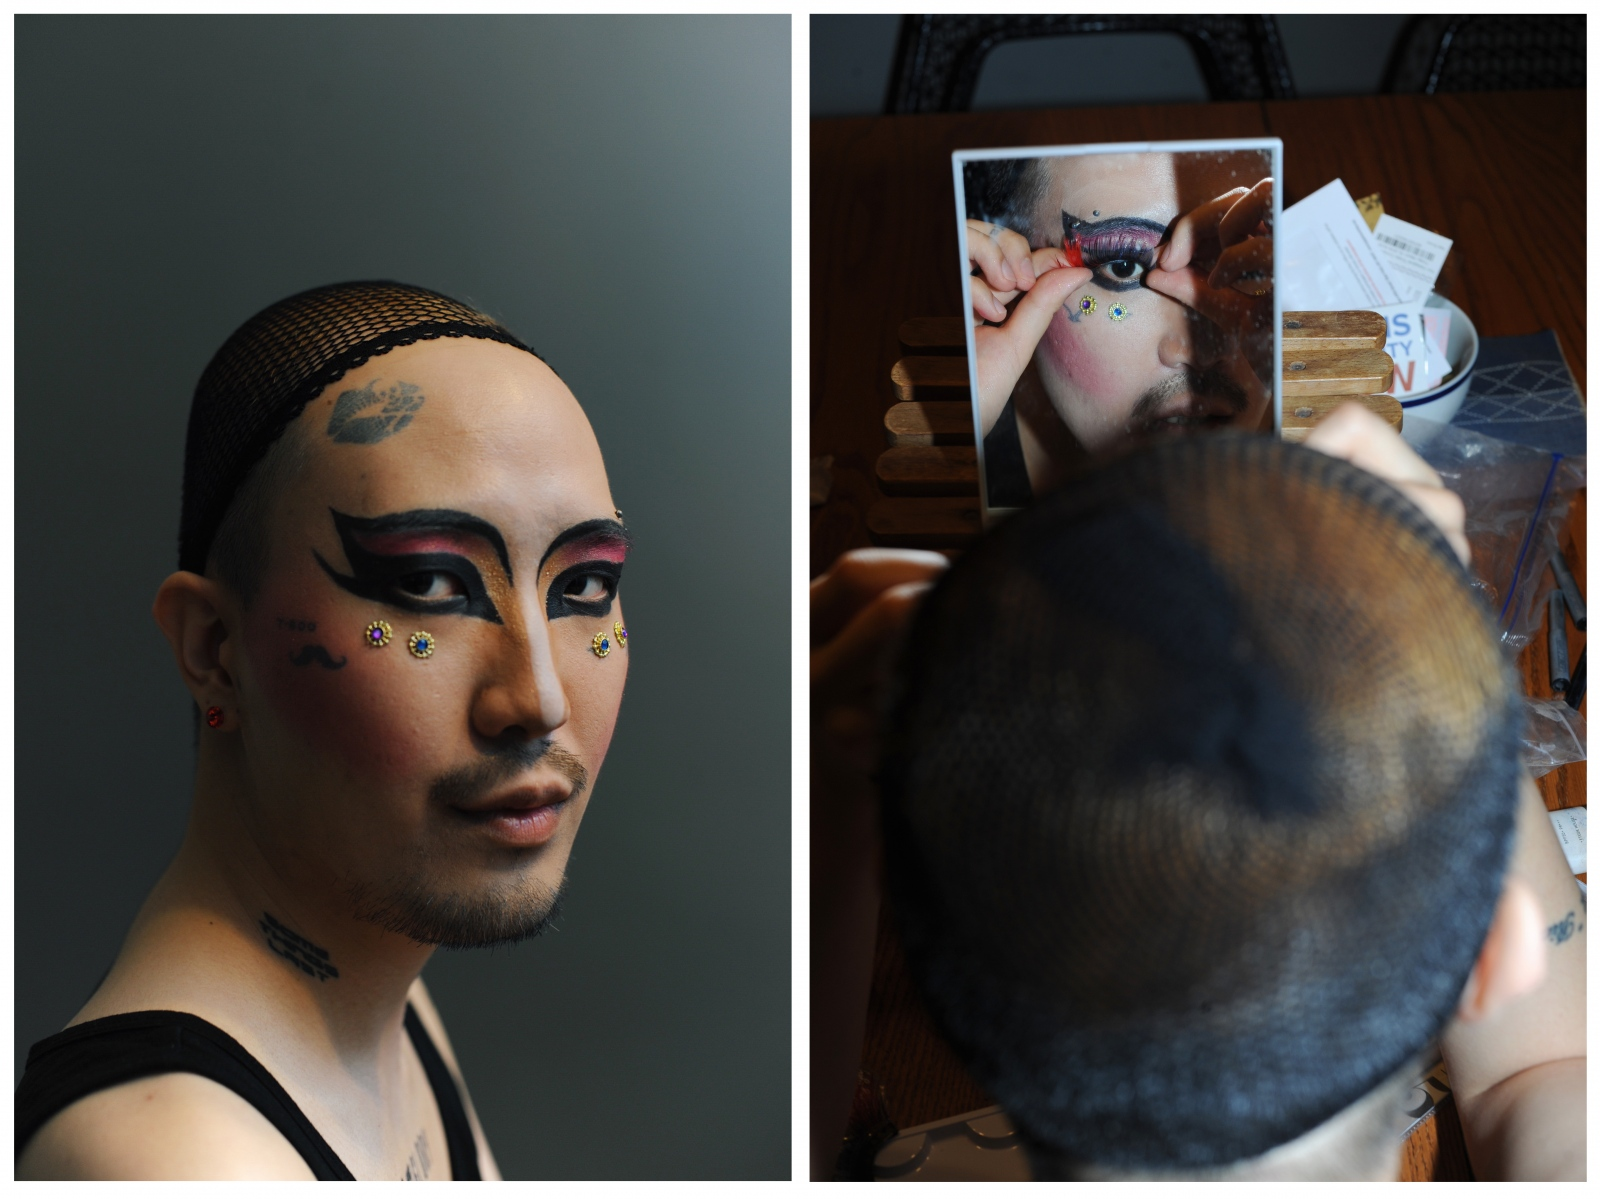 Performance artist Heezy Yang (b. 1990) dons makeup in order to transform into Hurricane Kimchi, his drag queen persona.The concept of drag is still foreign in Korea, and queens who perform do so in selectively known bars around Itaewon. He is one of the most prominent visual artists and performers in Seoul's queer community, founder of LGBTQIA+ Allies In Korea, and is planning the inaugural Seoul Drag Parade to come in Summer 2018. He was recently selected for Forbes 30 Under 30 in the Arts category.